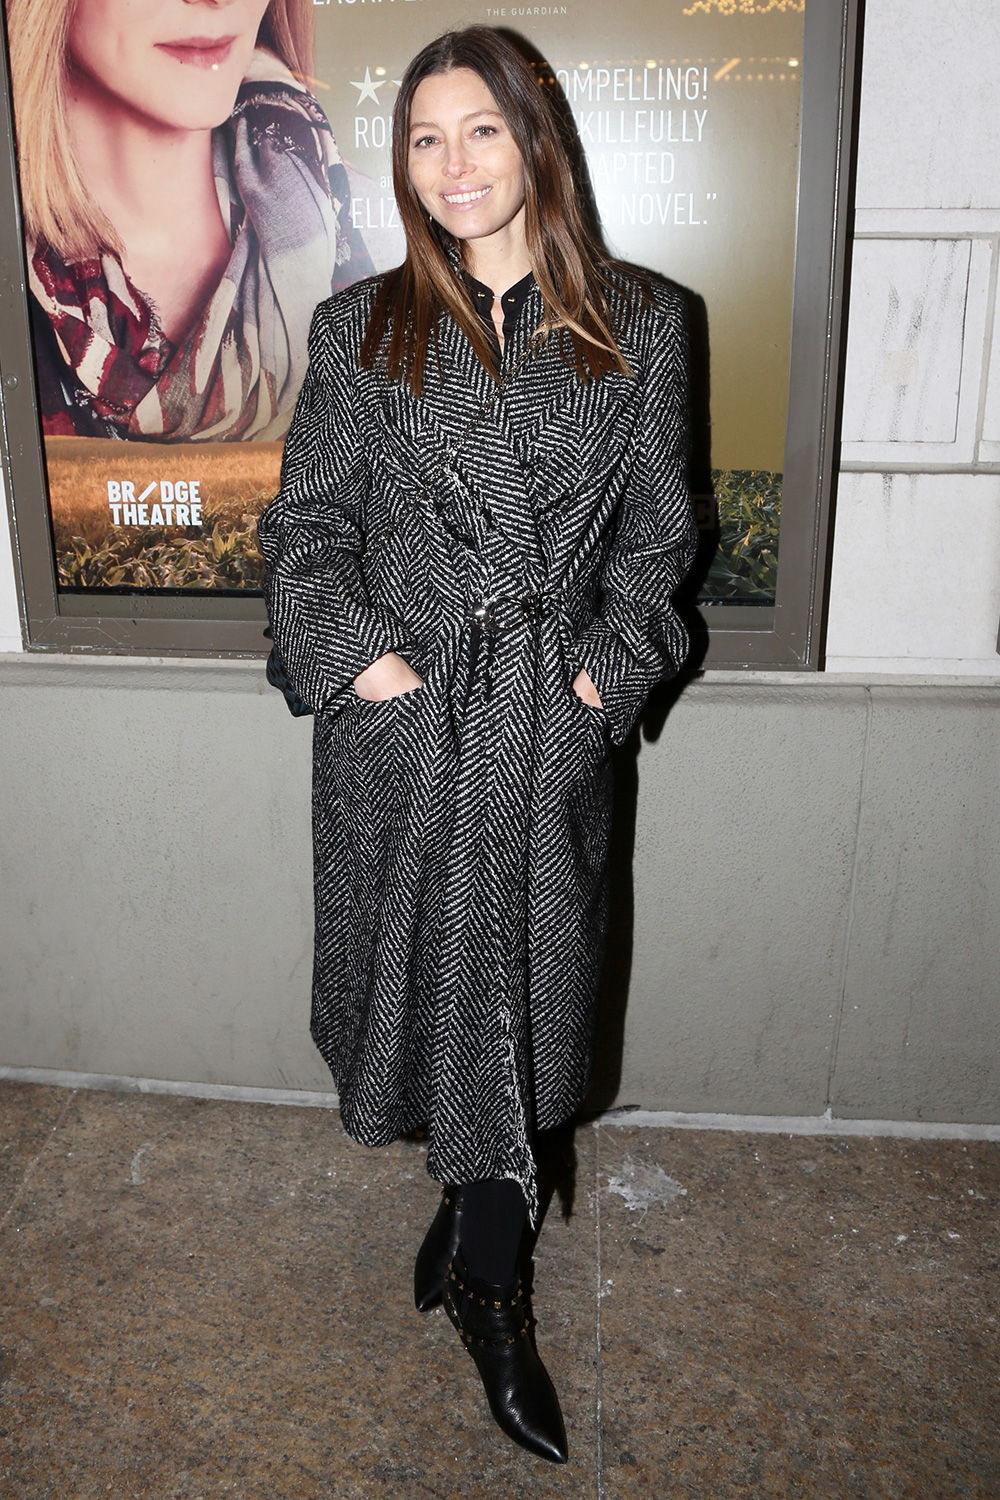 """Jessica Biel poses at the hit Manhattan Theatre Club play """"My Name is Lucy Barton""""on Broadway at The Samuel J Friedman Theatre on January 21, 2020 in New York City"""